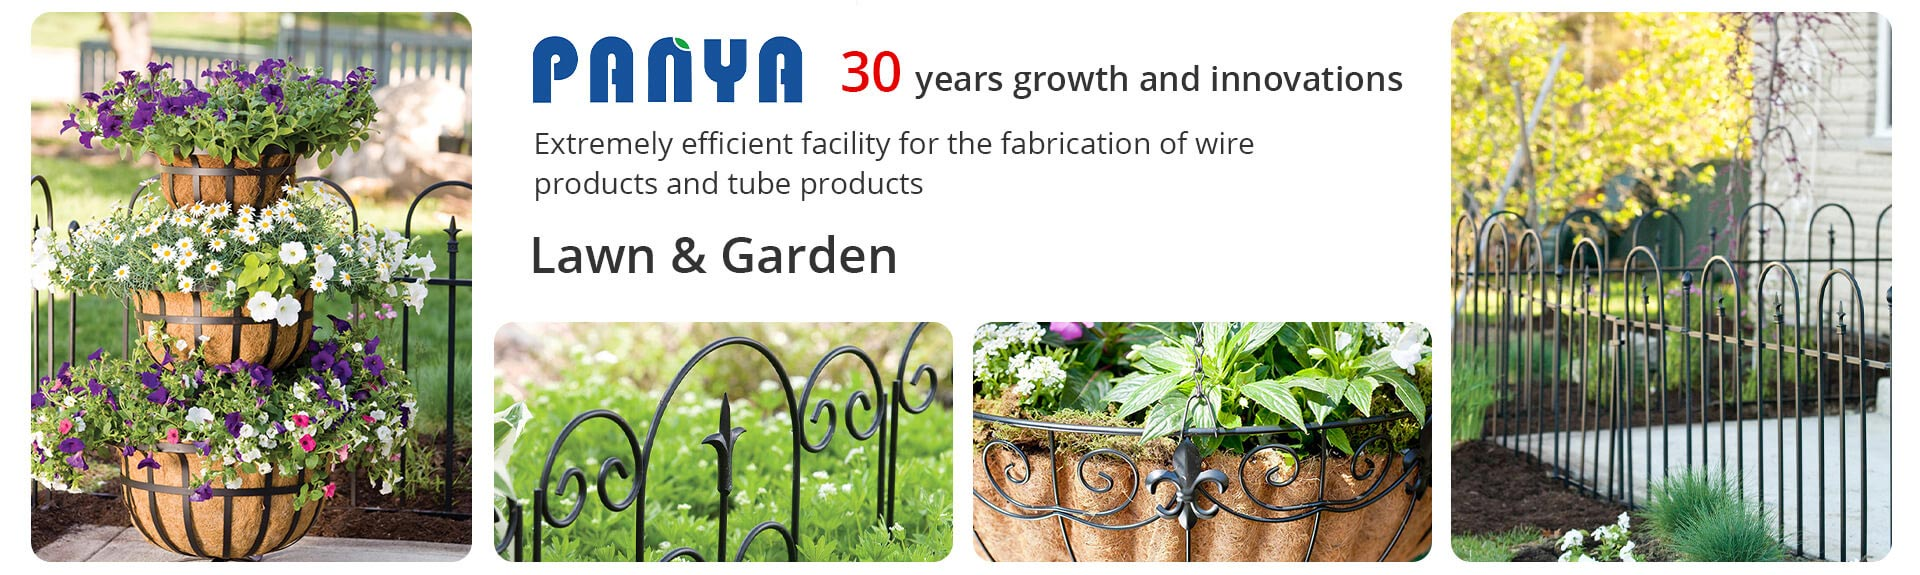 Tianjin Panyam Garden & Horticultural Products Co., Ltd.